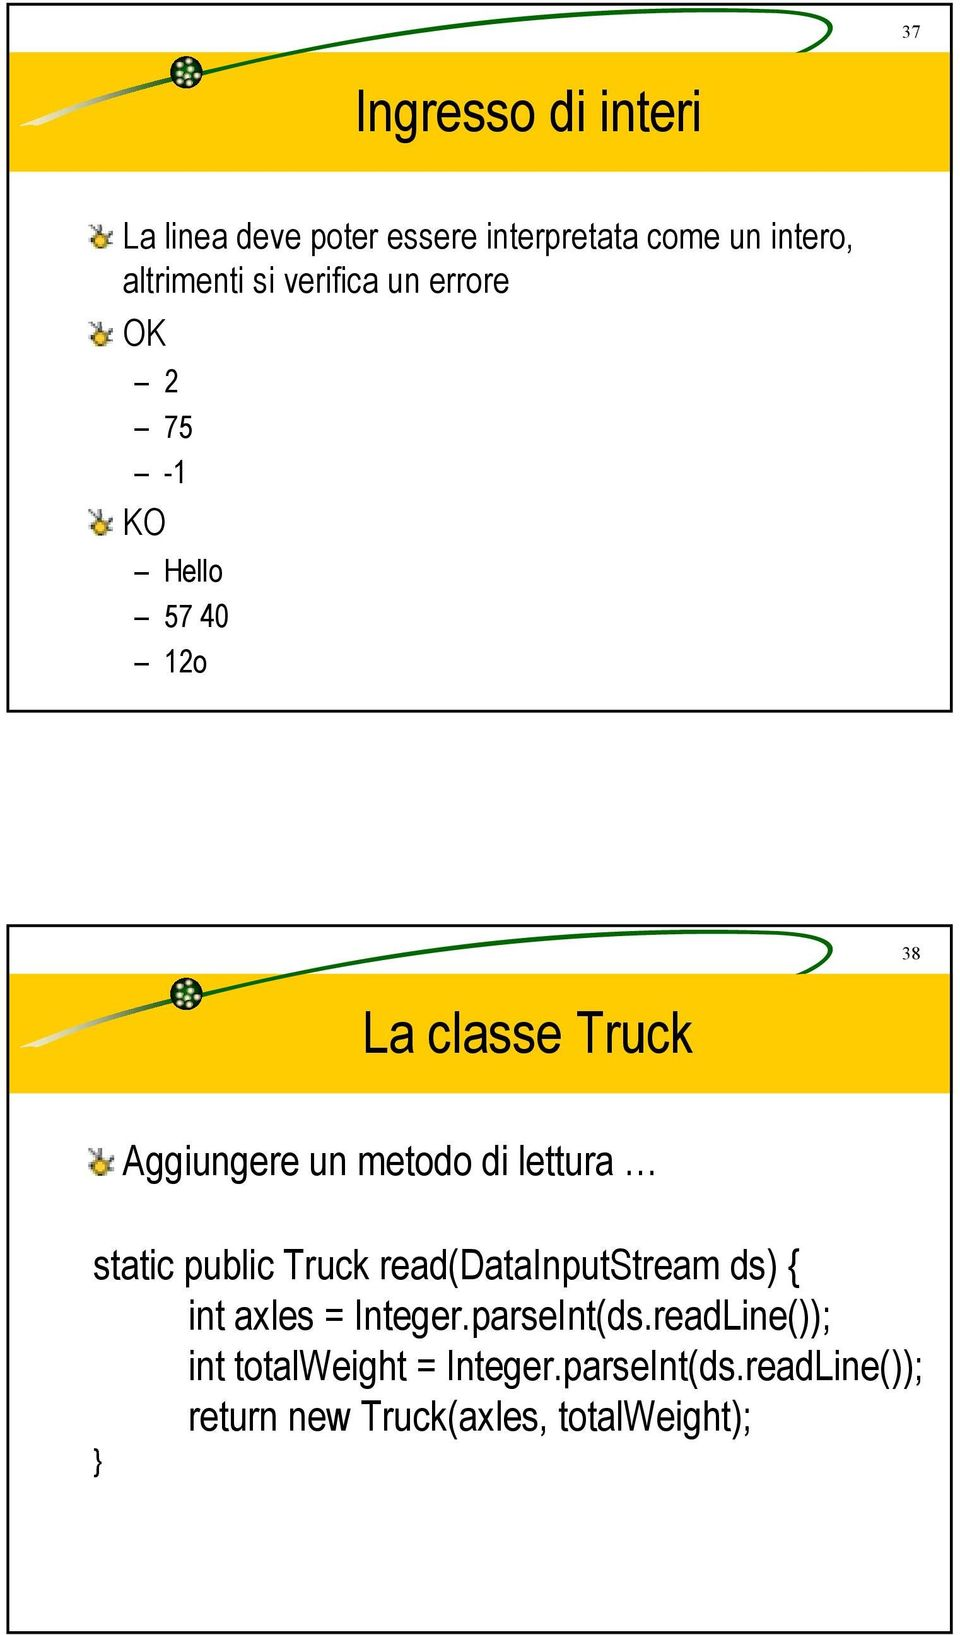 lettura static public Truck read(datainputstream ds) { int axles = Integer.parseInt(ds.